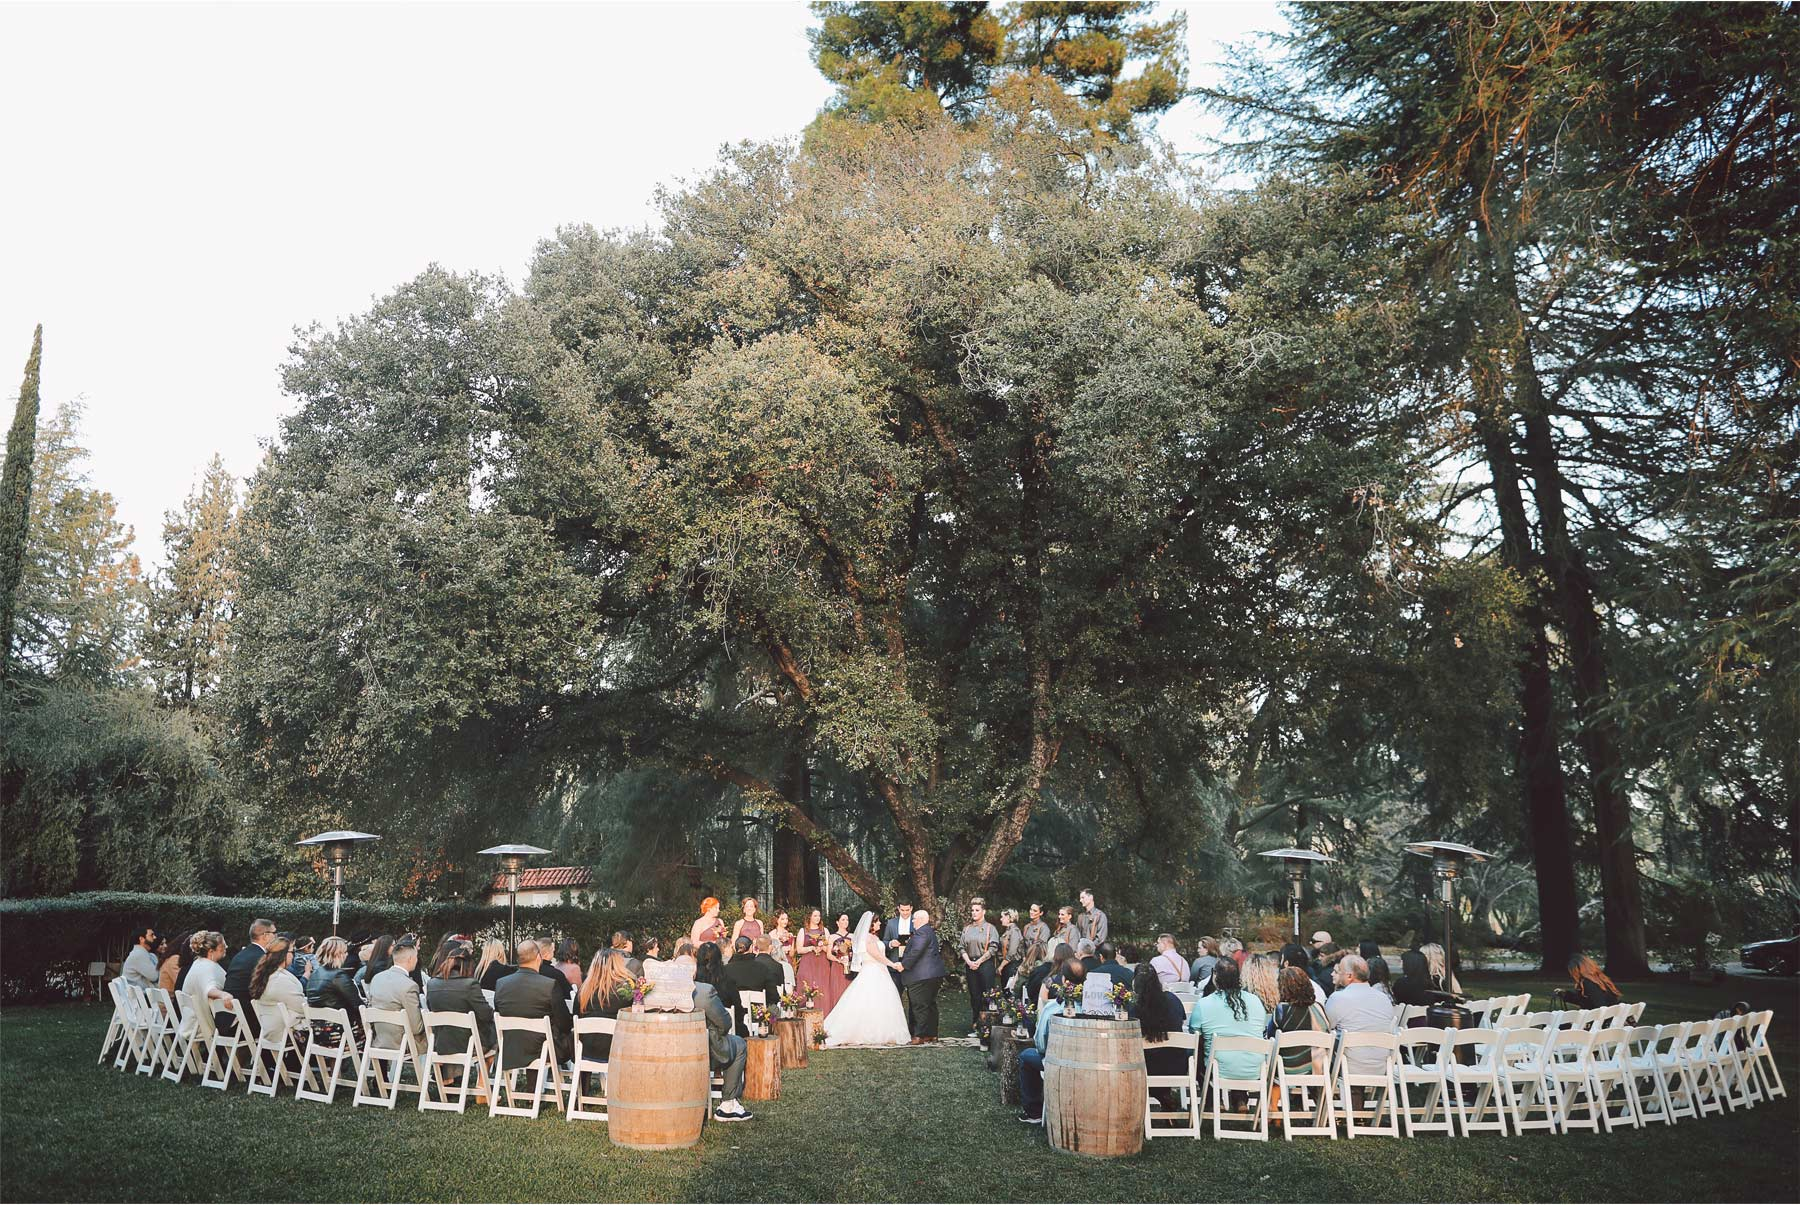 15-Los-Angeles-California-Wedding-Photographer-by-Vick-Photography-Highland-Springs-Ranch-LGBT-Outdoor-Ceremony-Trees-Rebecca-and-Terri.jpg